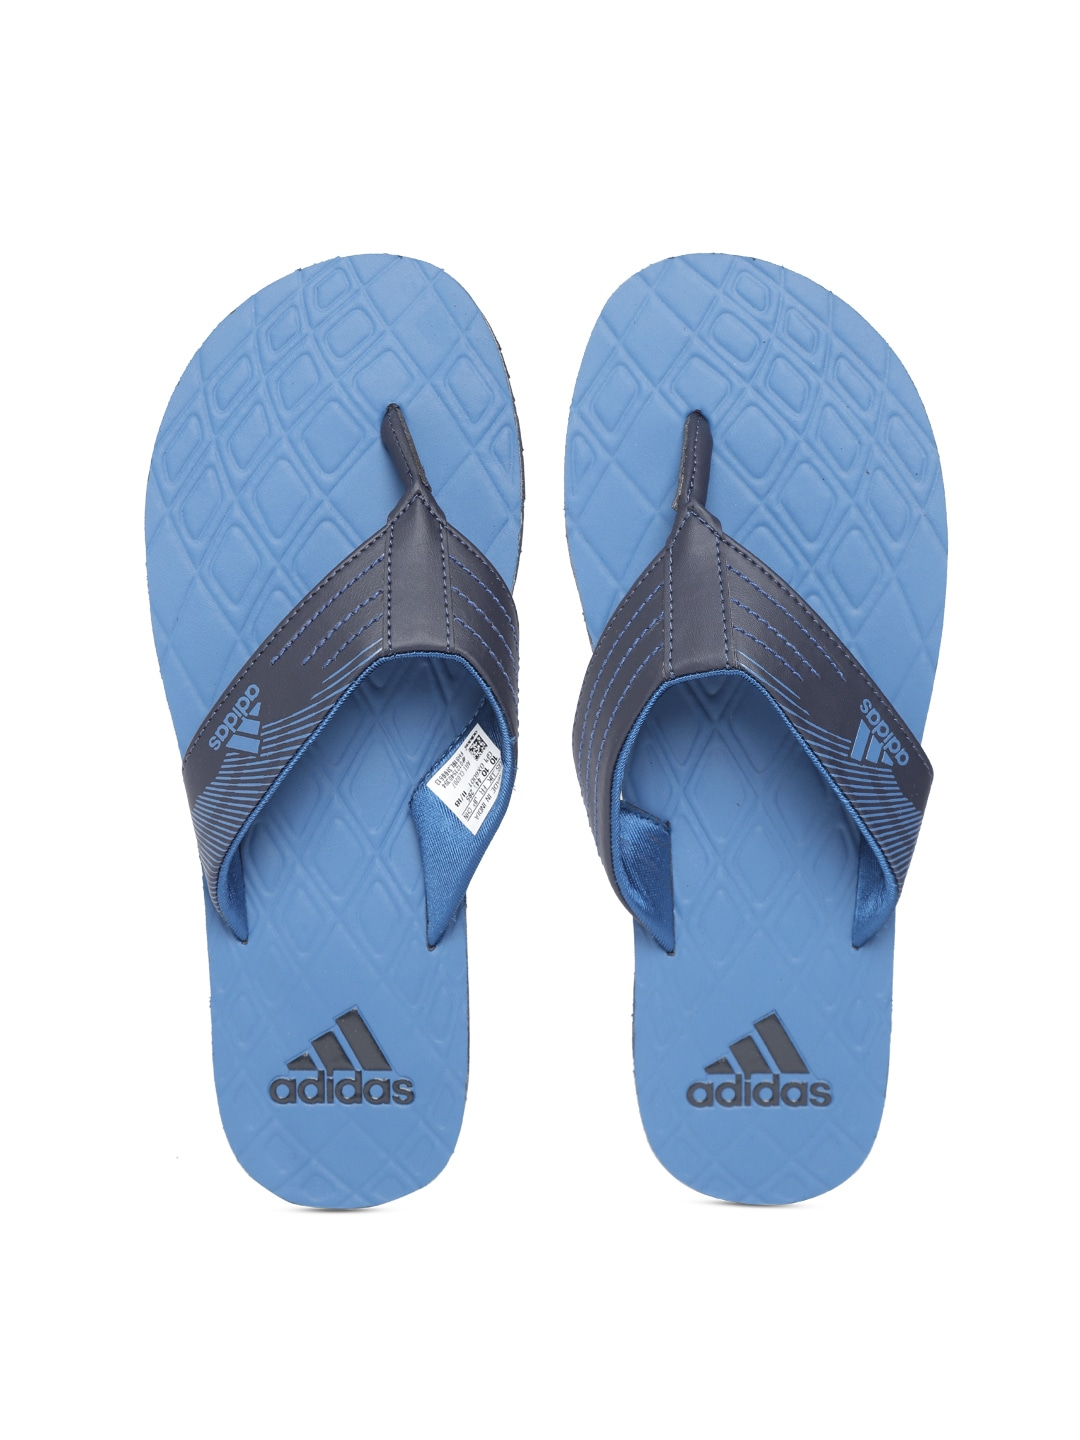 2e3c9e6cb0cf Flip Flops for Men - Buy Slippers   Flip Flops for Men Online